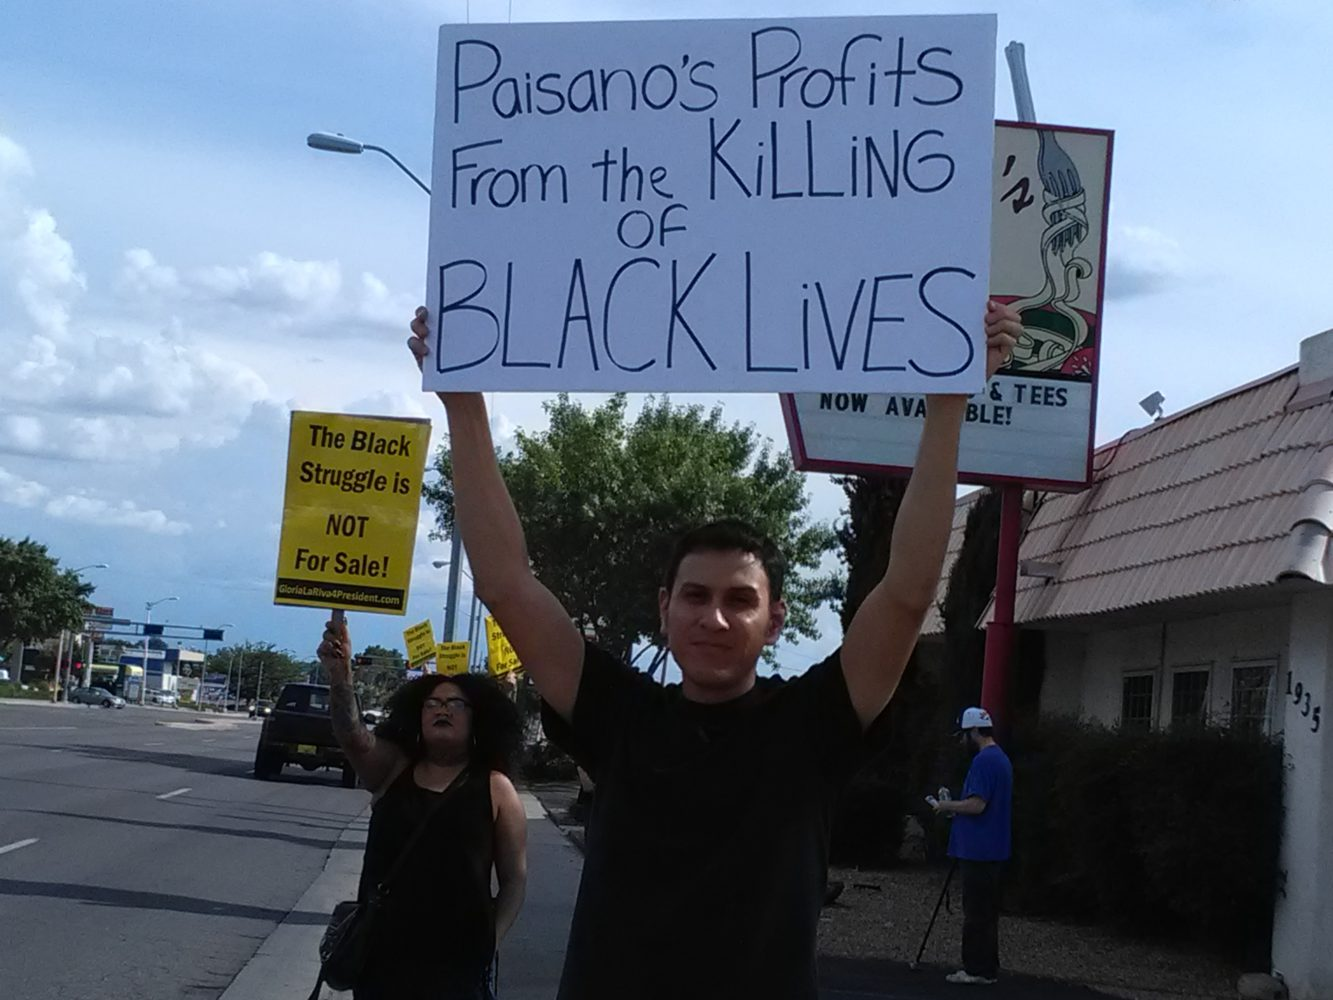 Photo of Picketers at restaurant: The Black struggle is not a joke